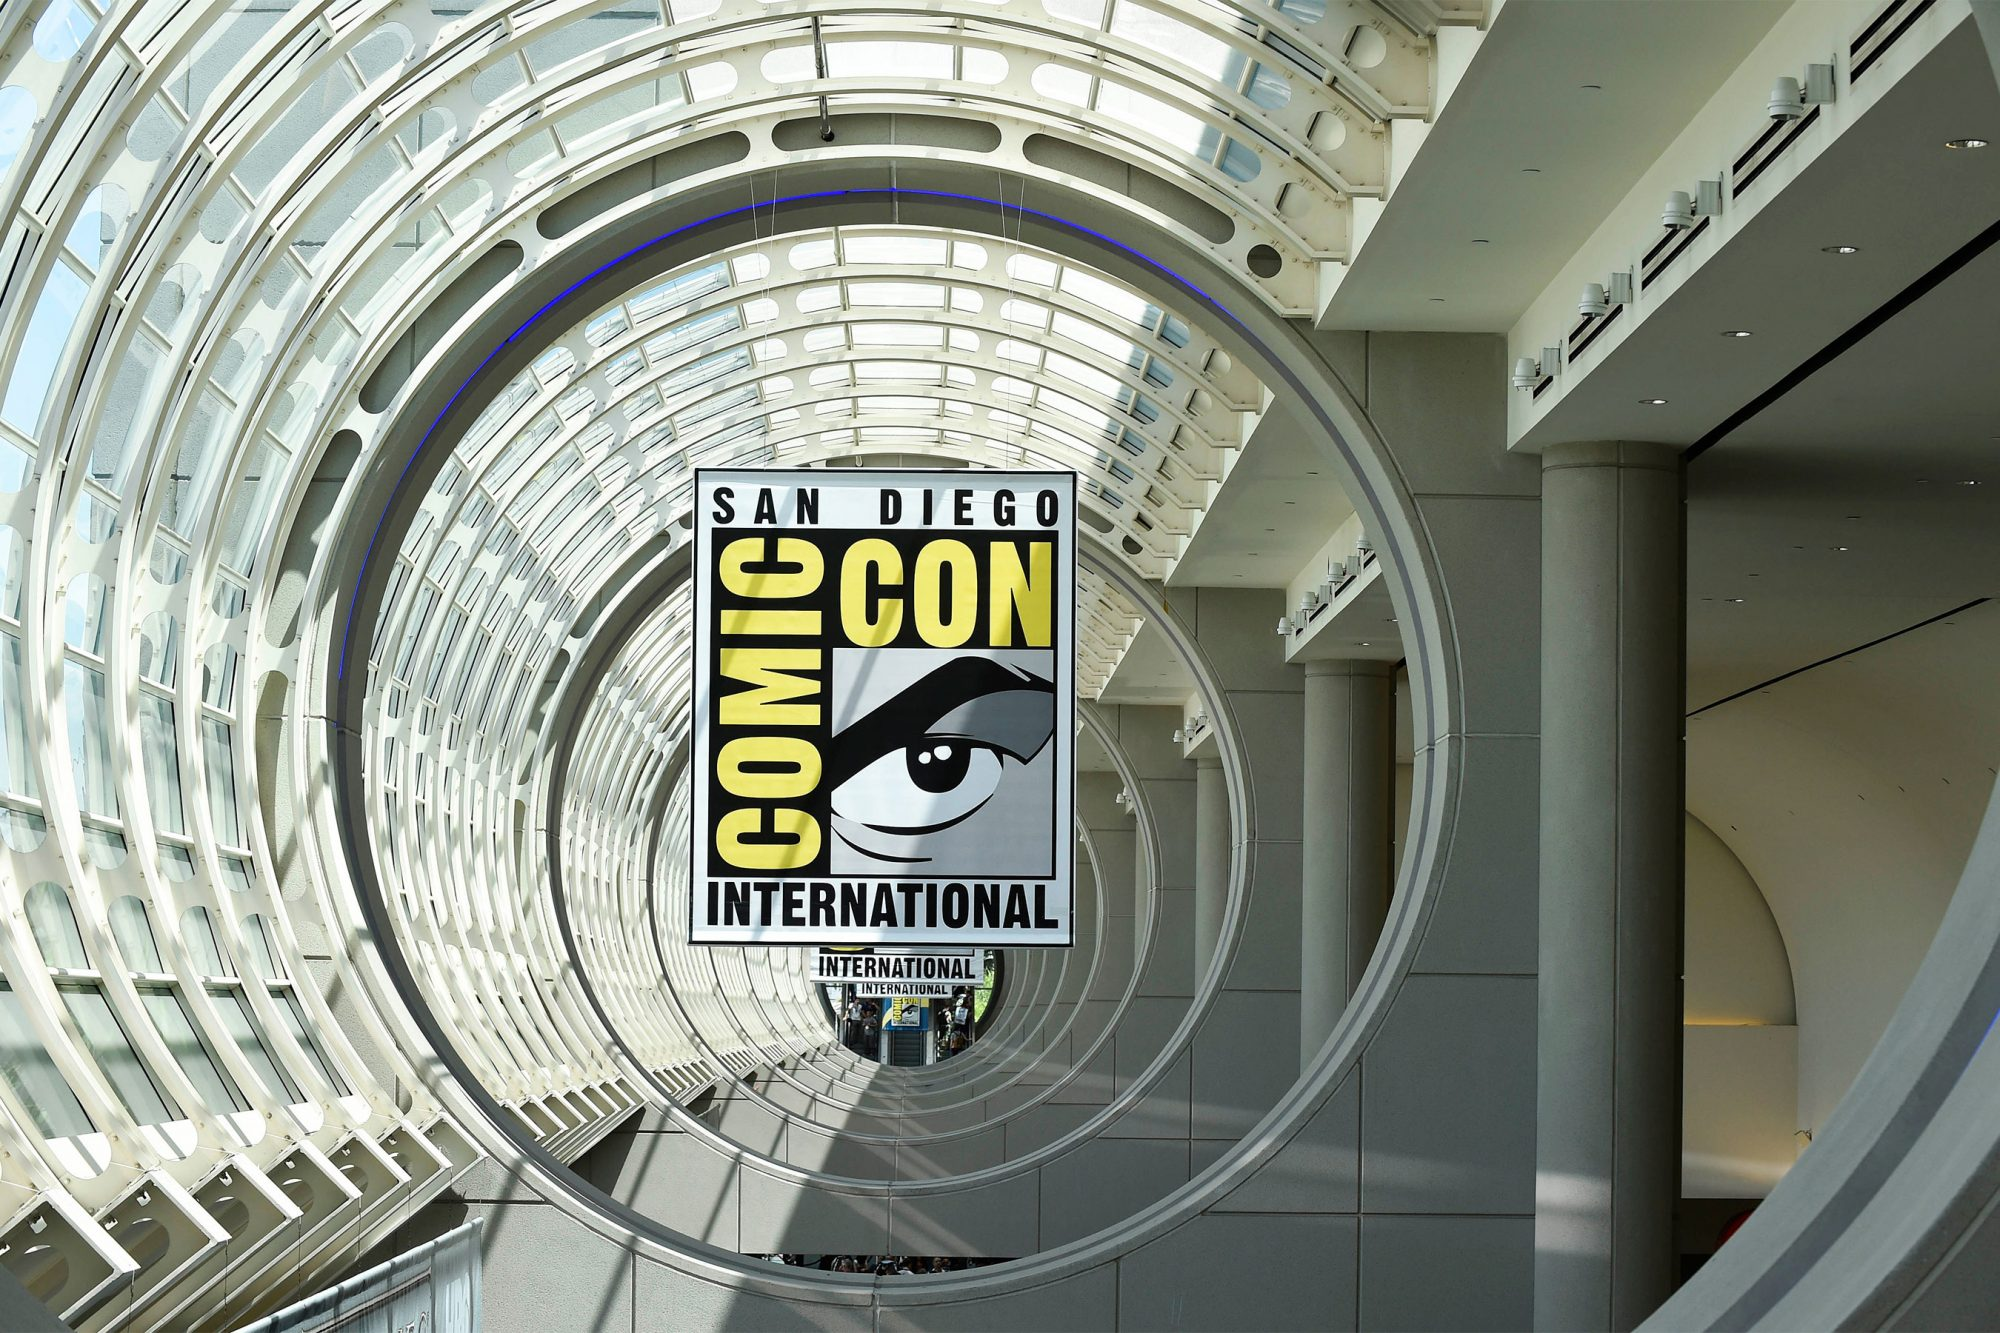 2014 Comic-Con - Atmosphere, San Diego, USA - 24 Jul 2014